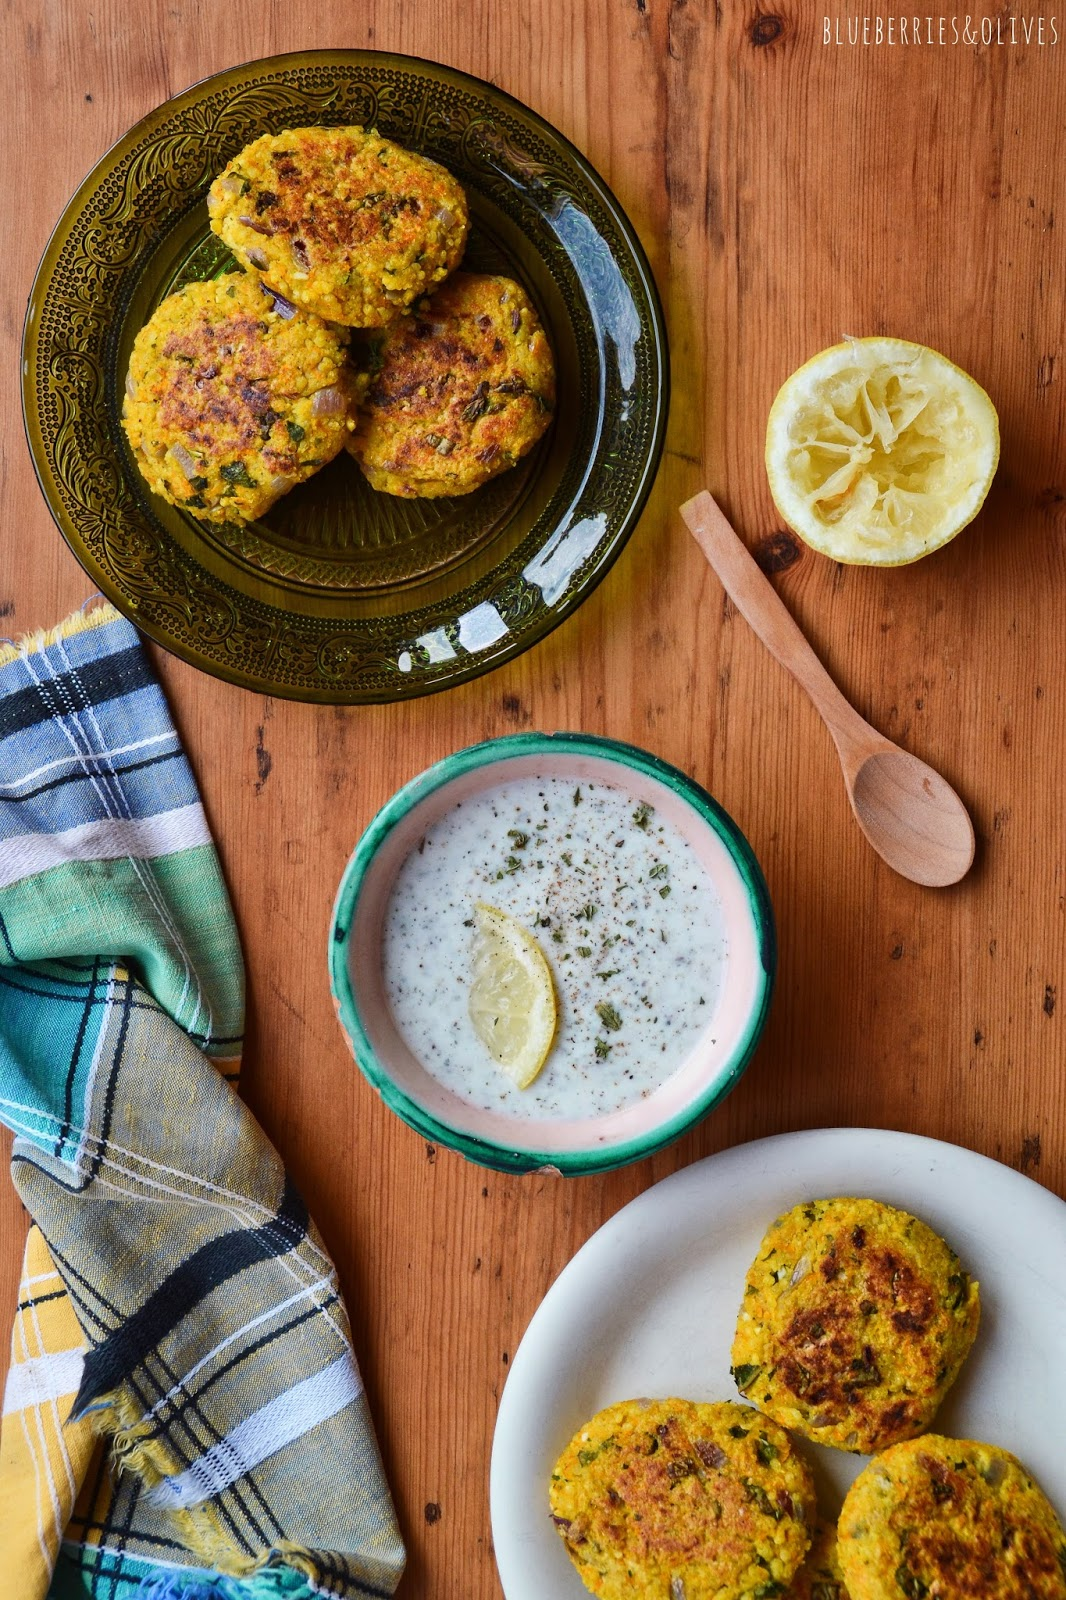 MILLET VEGGIE BURGERS WITH CURRY AND A YOGURT SAUCE (GF, LF, VGT)